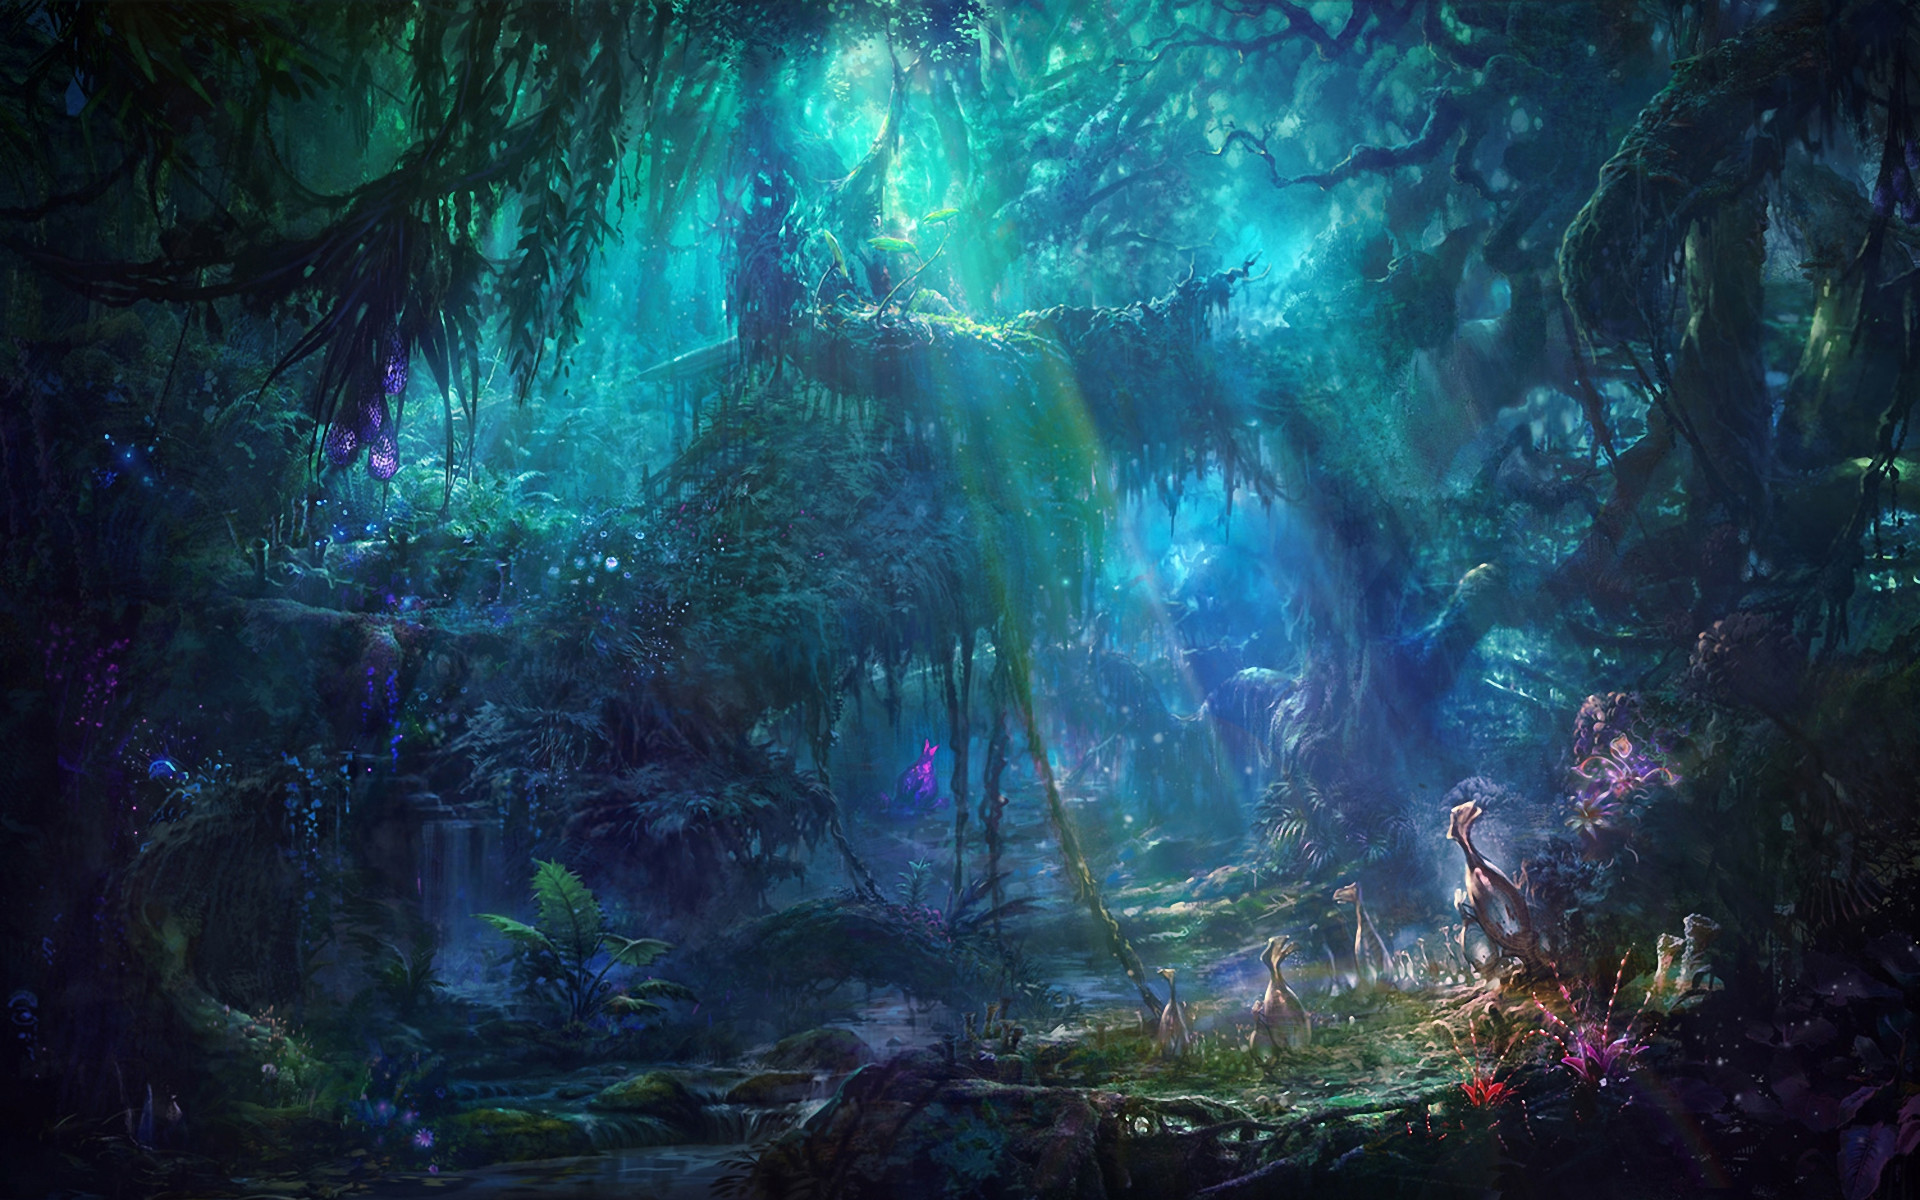 1920x1200 Fantasy Landscape Wallpaper/Background 1920 x 1200 - Id: 269793 - Wallpaper  Abyss